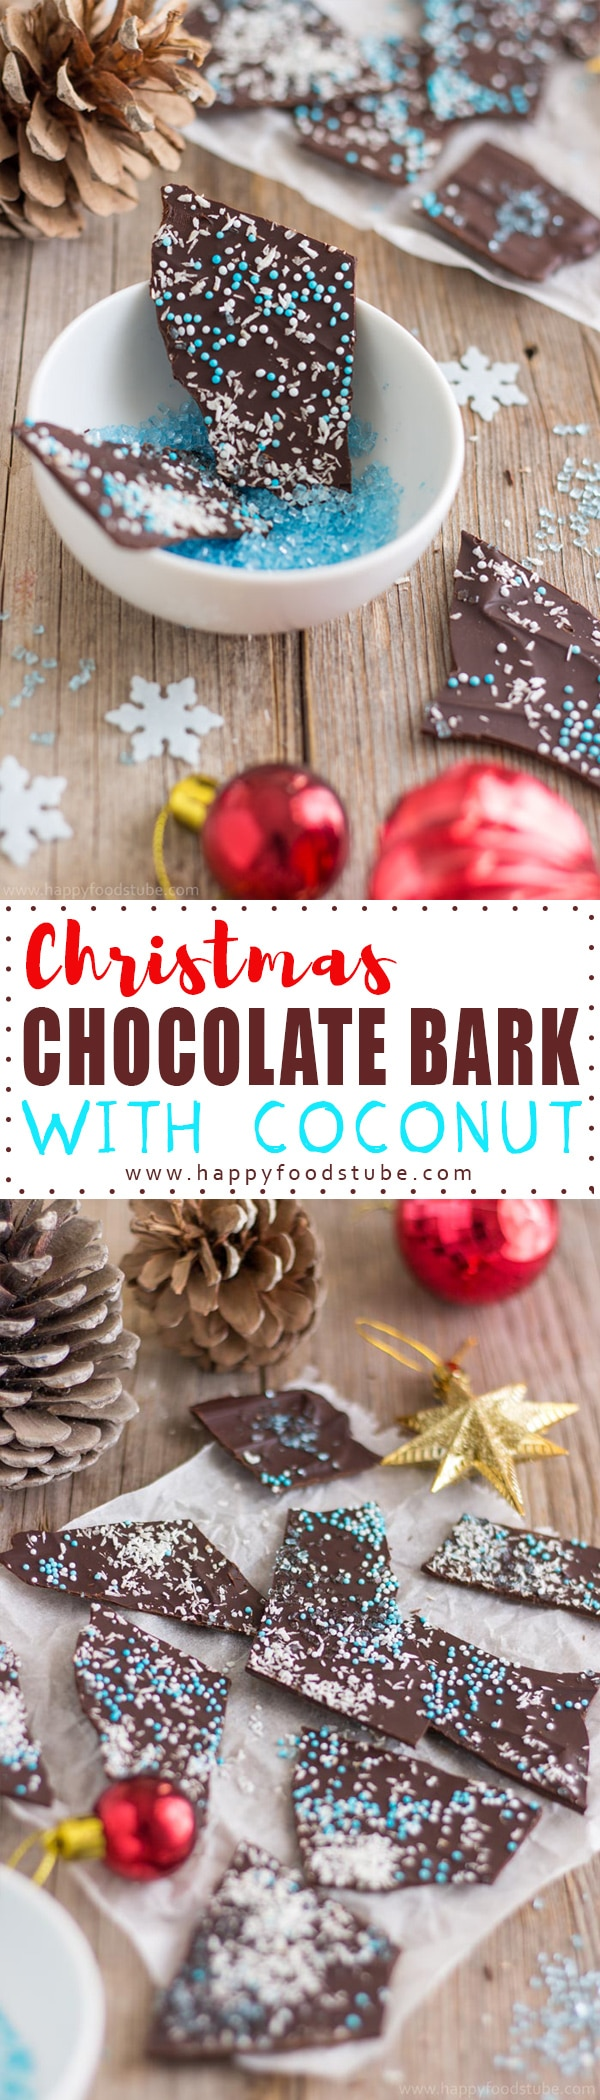 Christmas Chocolate Bark with Coconut. An edible Christmas gift idea for any chocolate lover out there. Ready in 10 minutes! | happyfoodstube.com